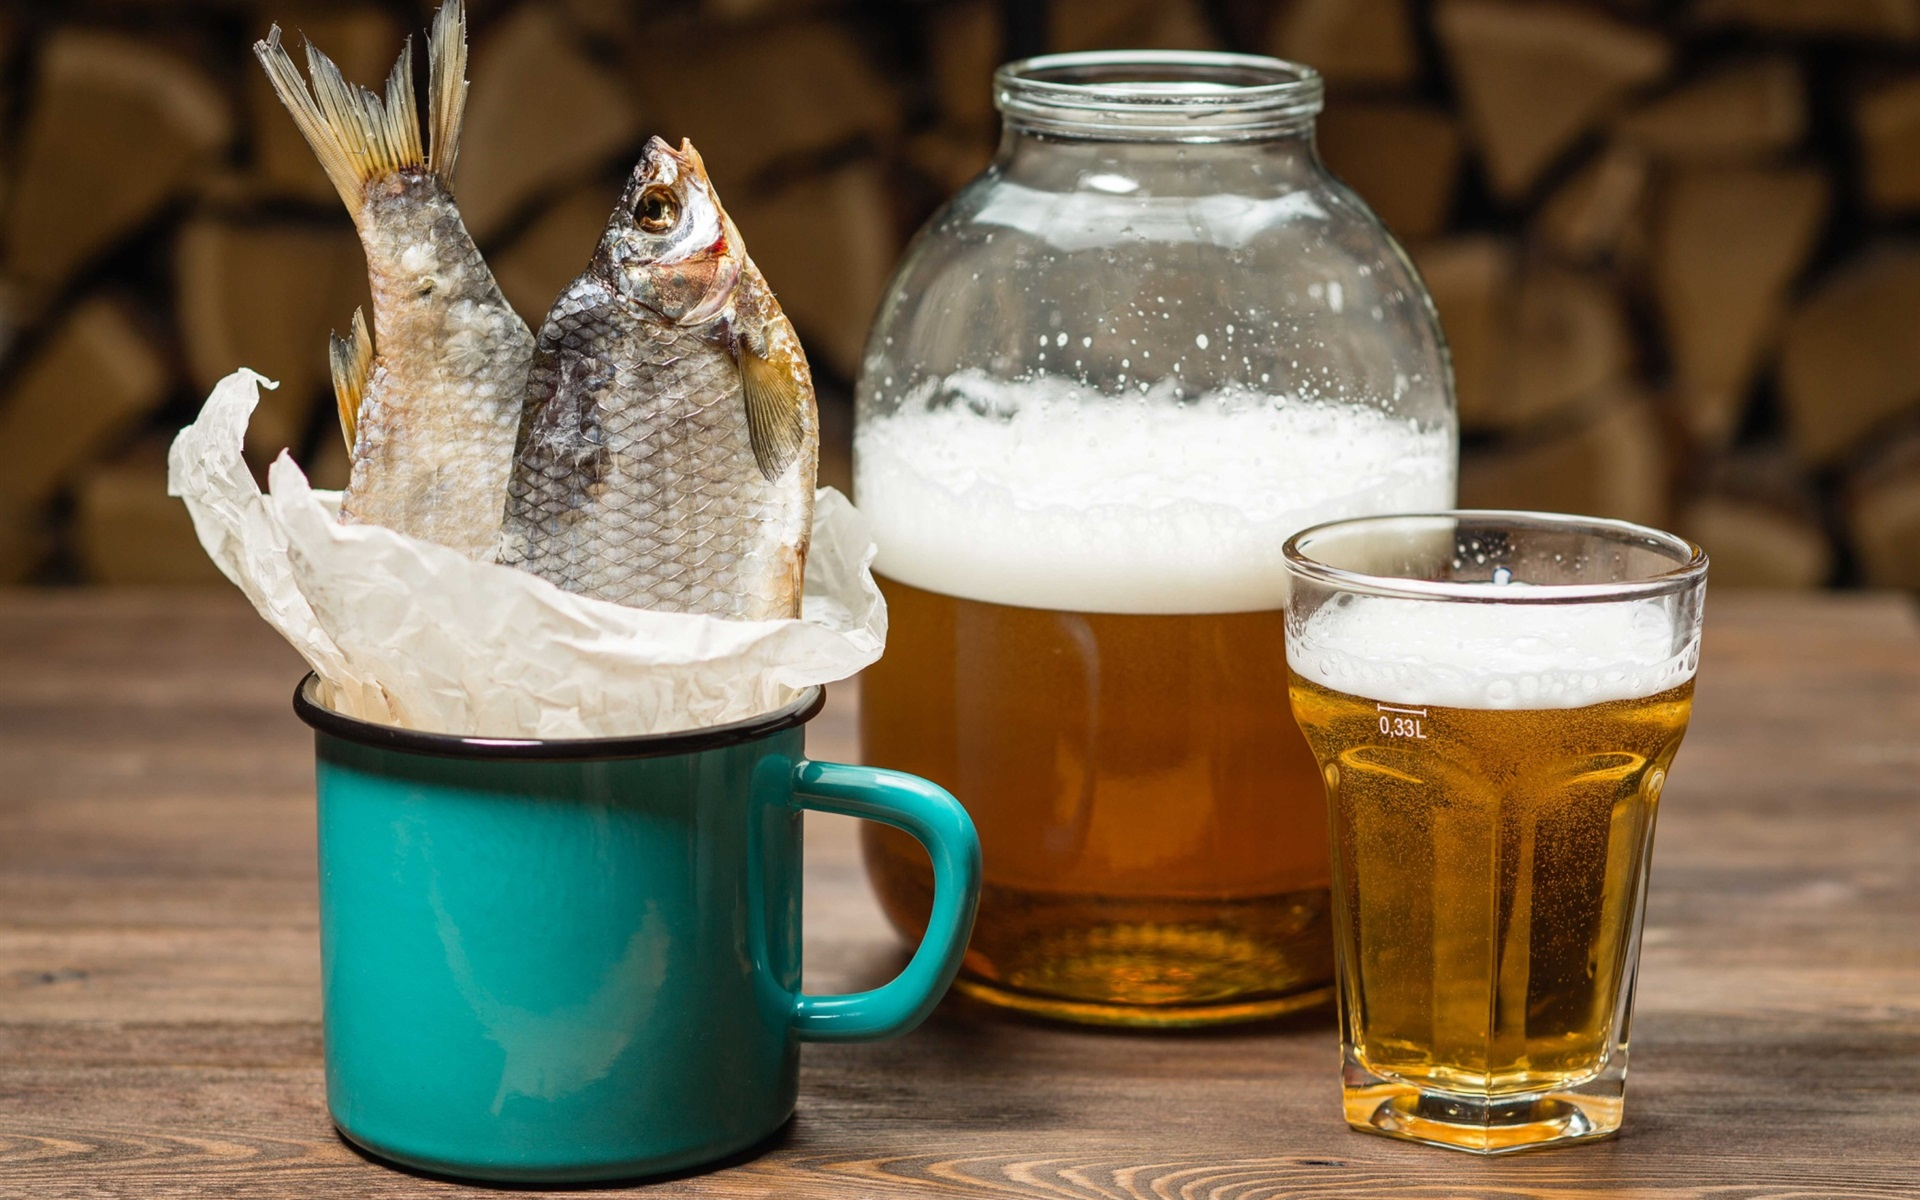 Wallpaper Beer Fish Cup 1920x1440 Hd Picture Image